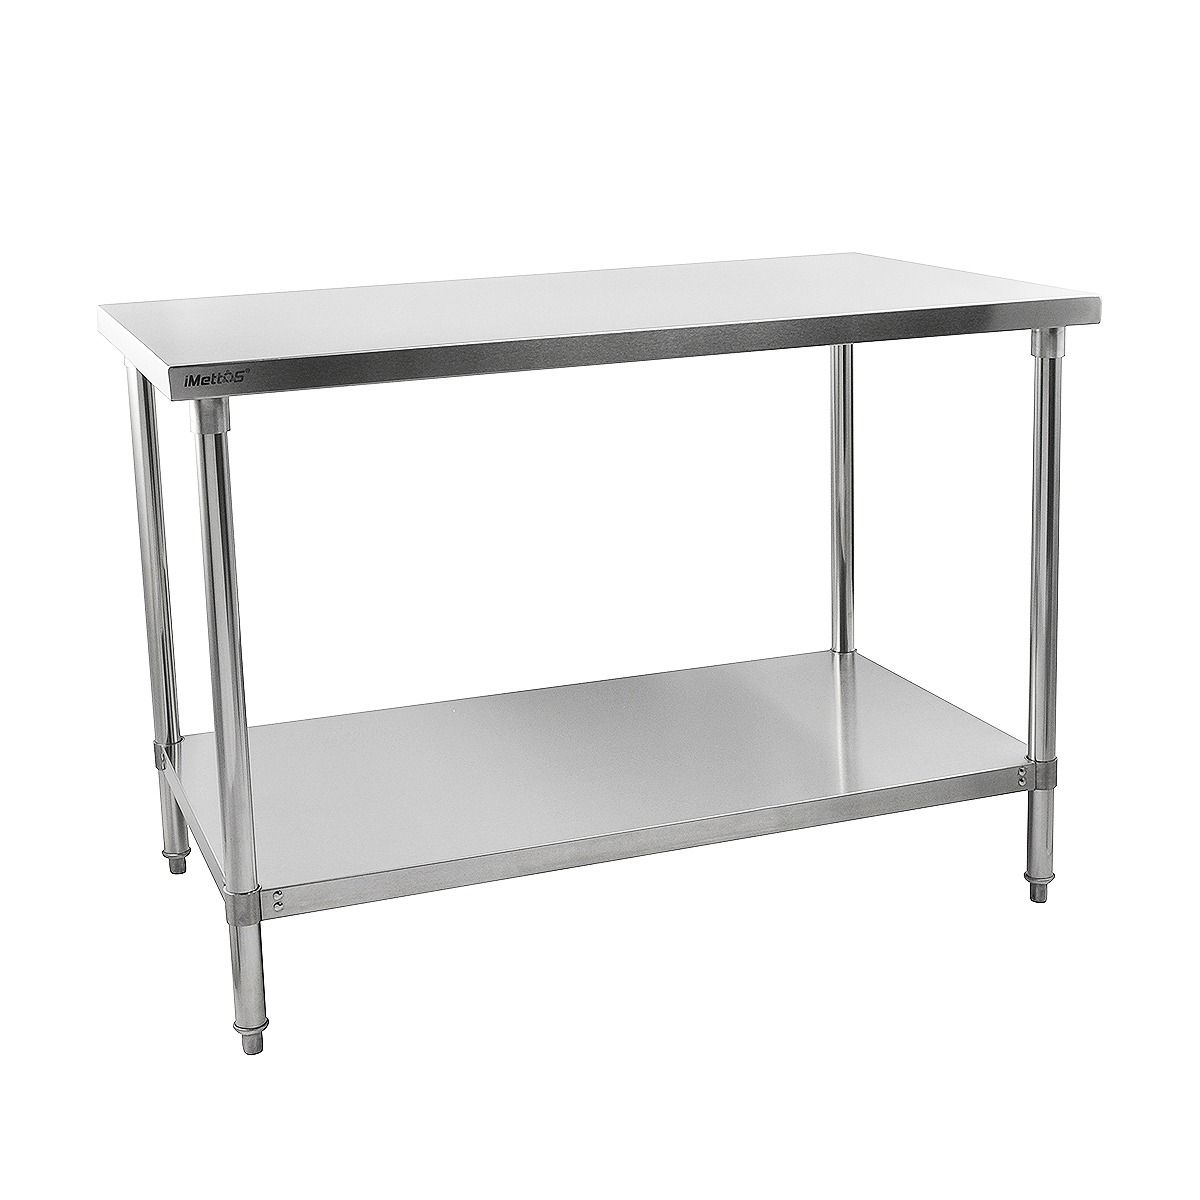 iMettos Stainless Steel Prep Table Width 1500mm - 141004